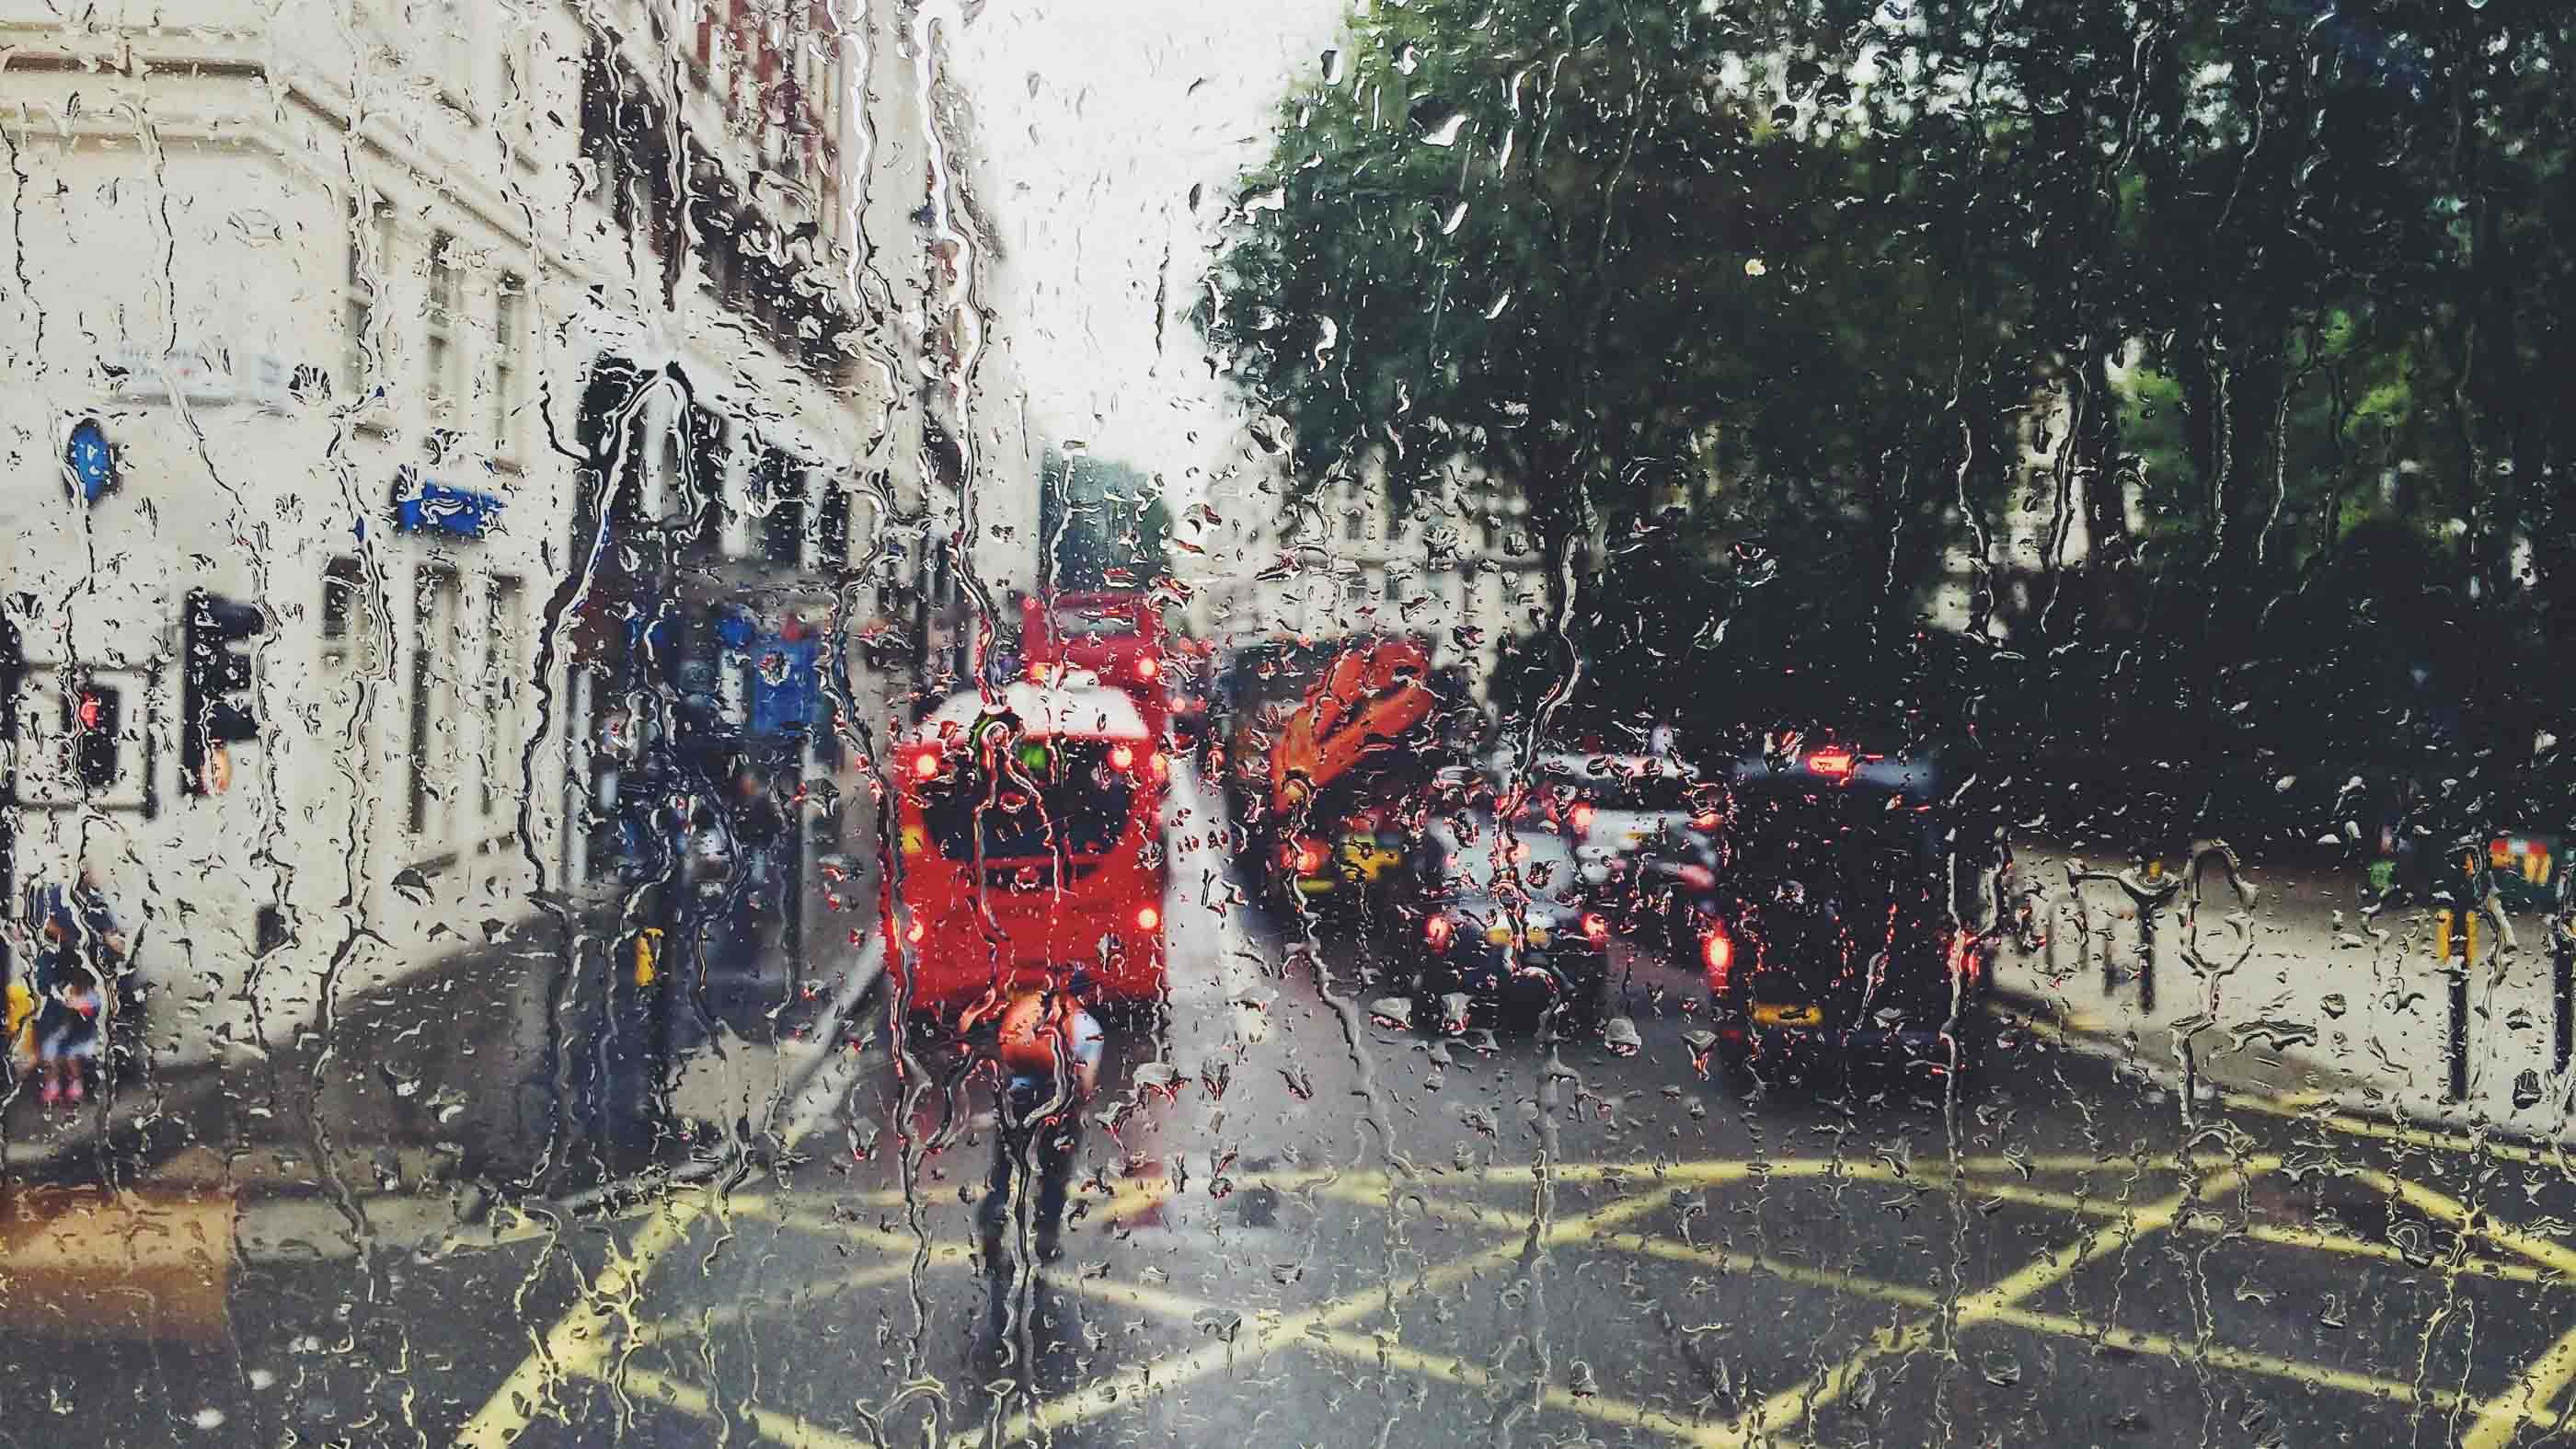 Why Traveling In The Rain Is Better For The Soul